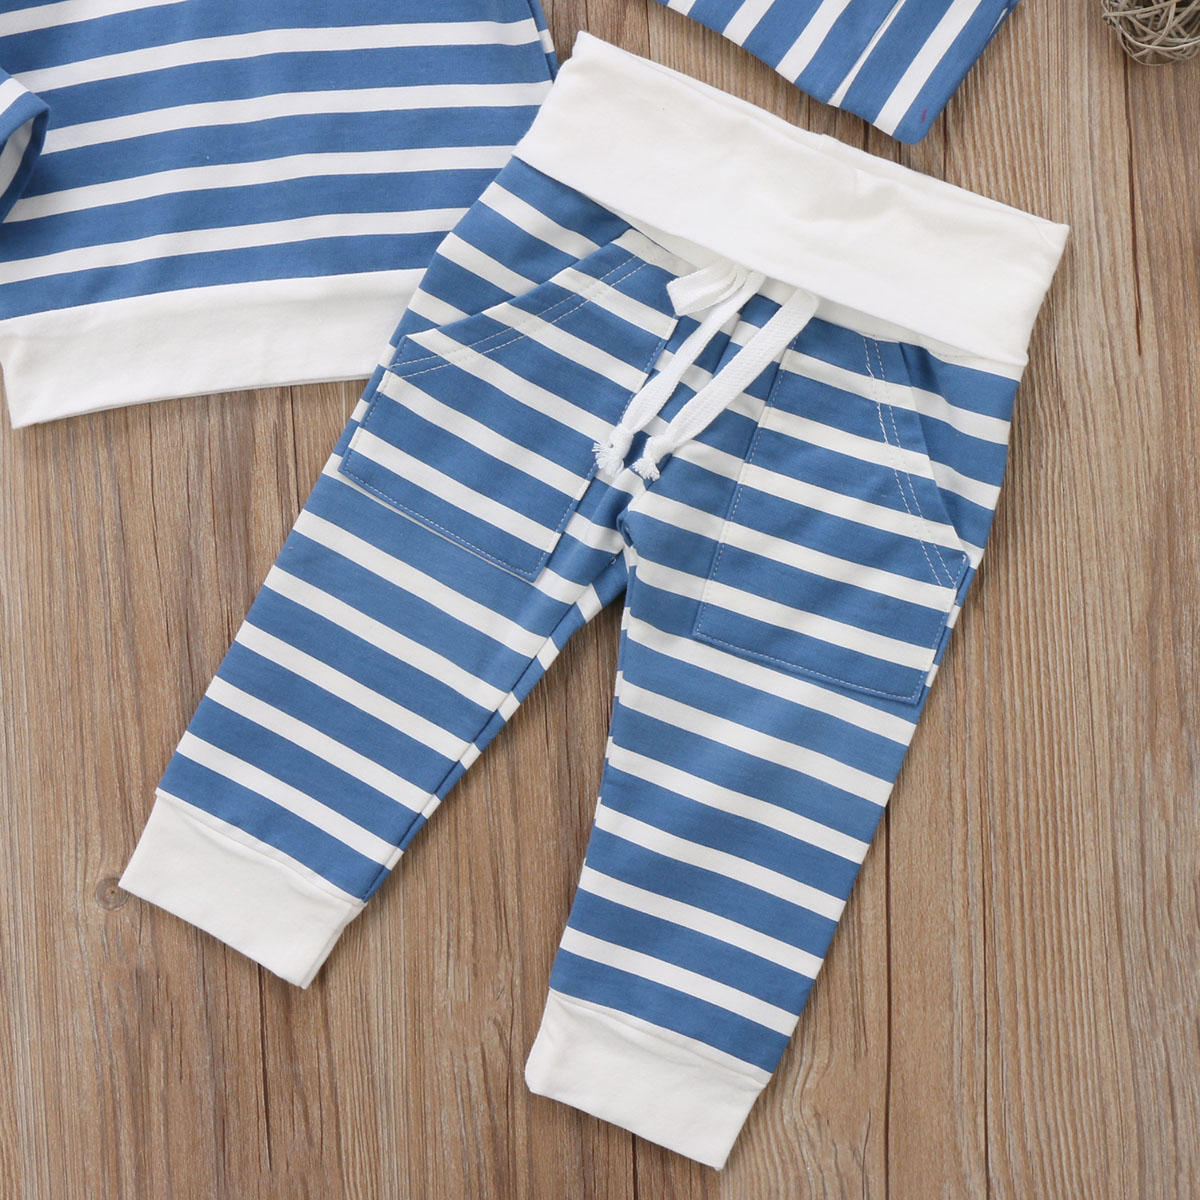 Infant Newborn Baby Boys Girls Casual Clothes Set Striped Long Sleeves Hooded Top+Long Pants Clothes Set 0-24M